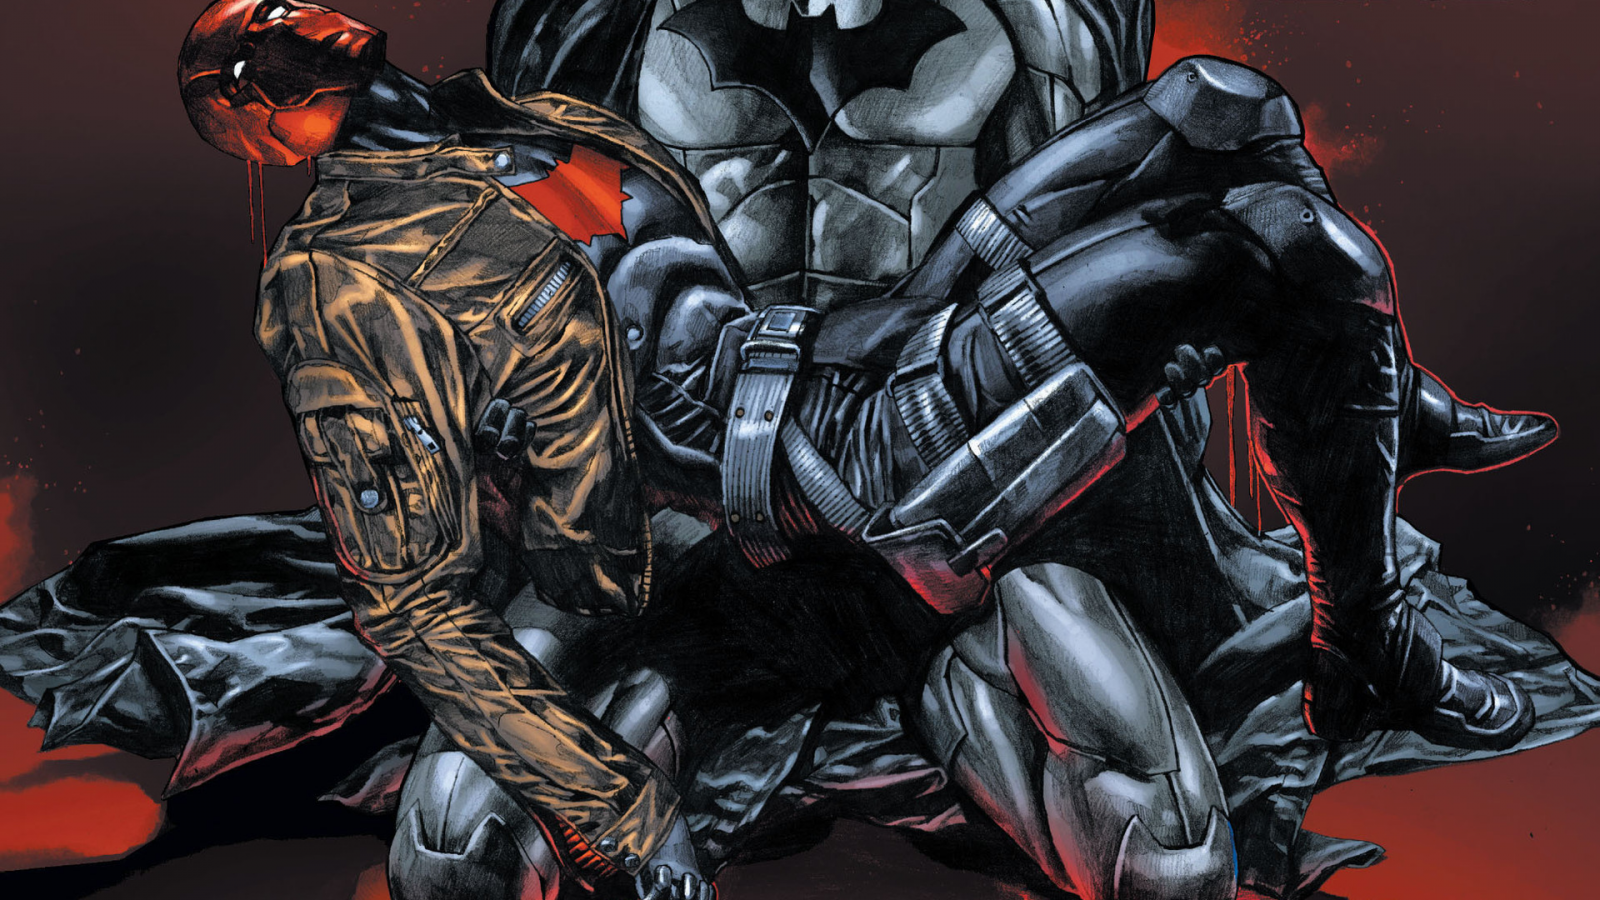 Free Download Red Hood And The Outlaws Computer Wallpapers Desktop